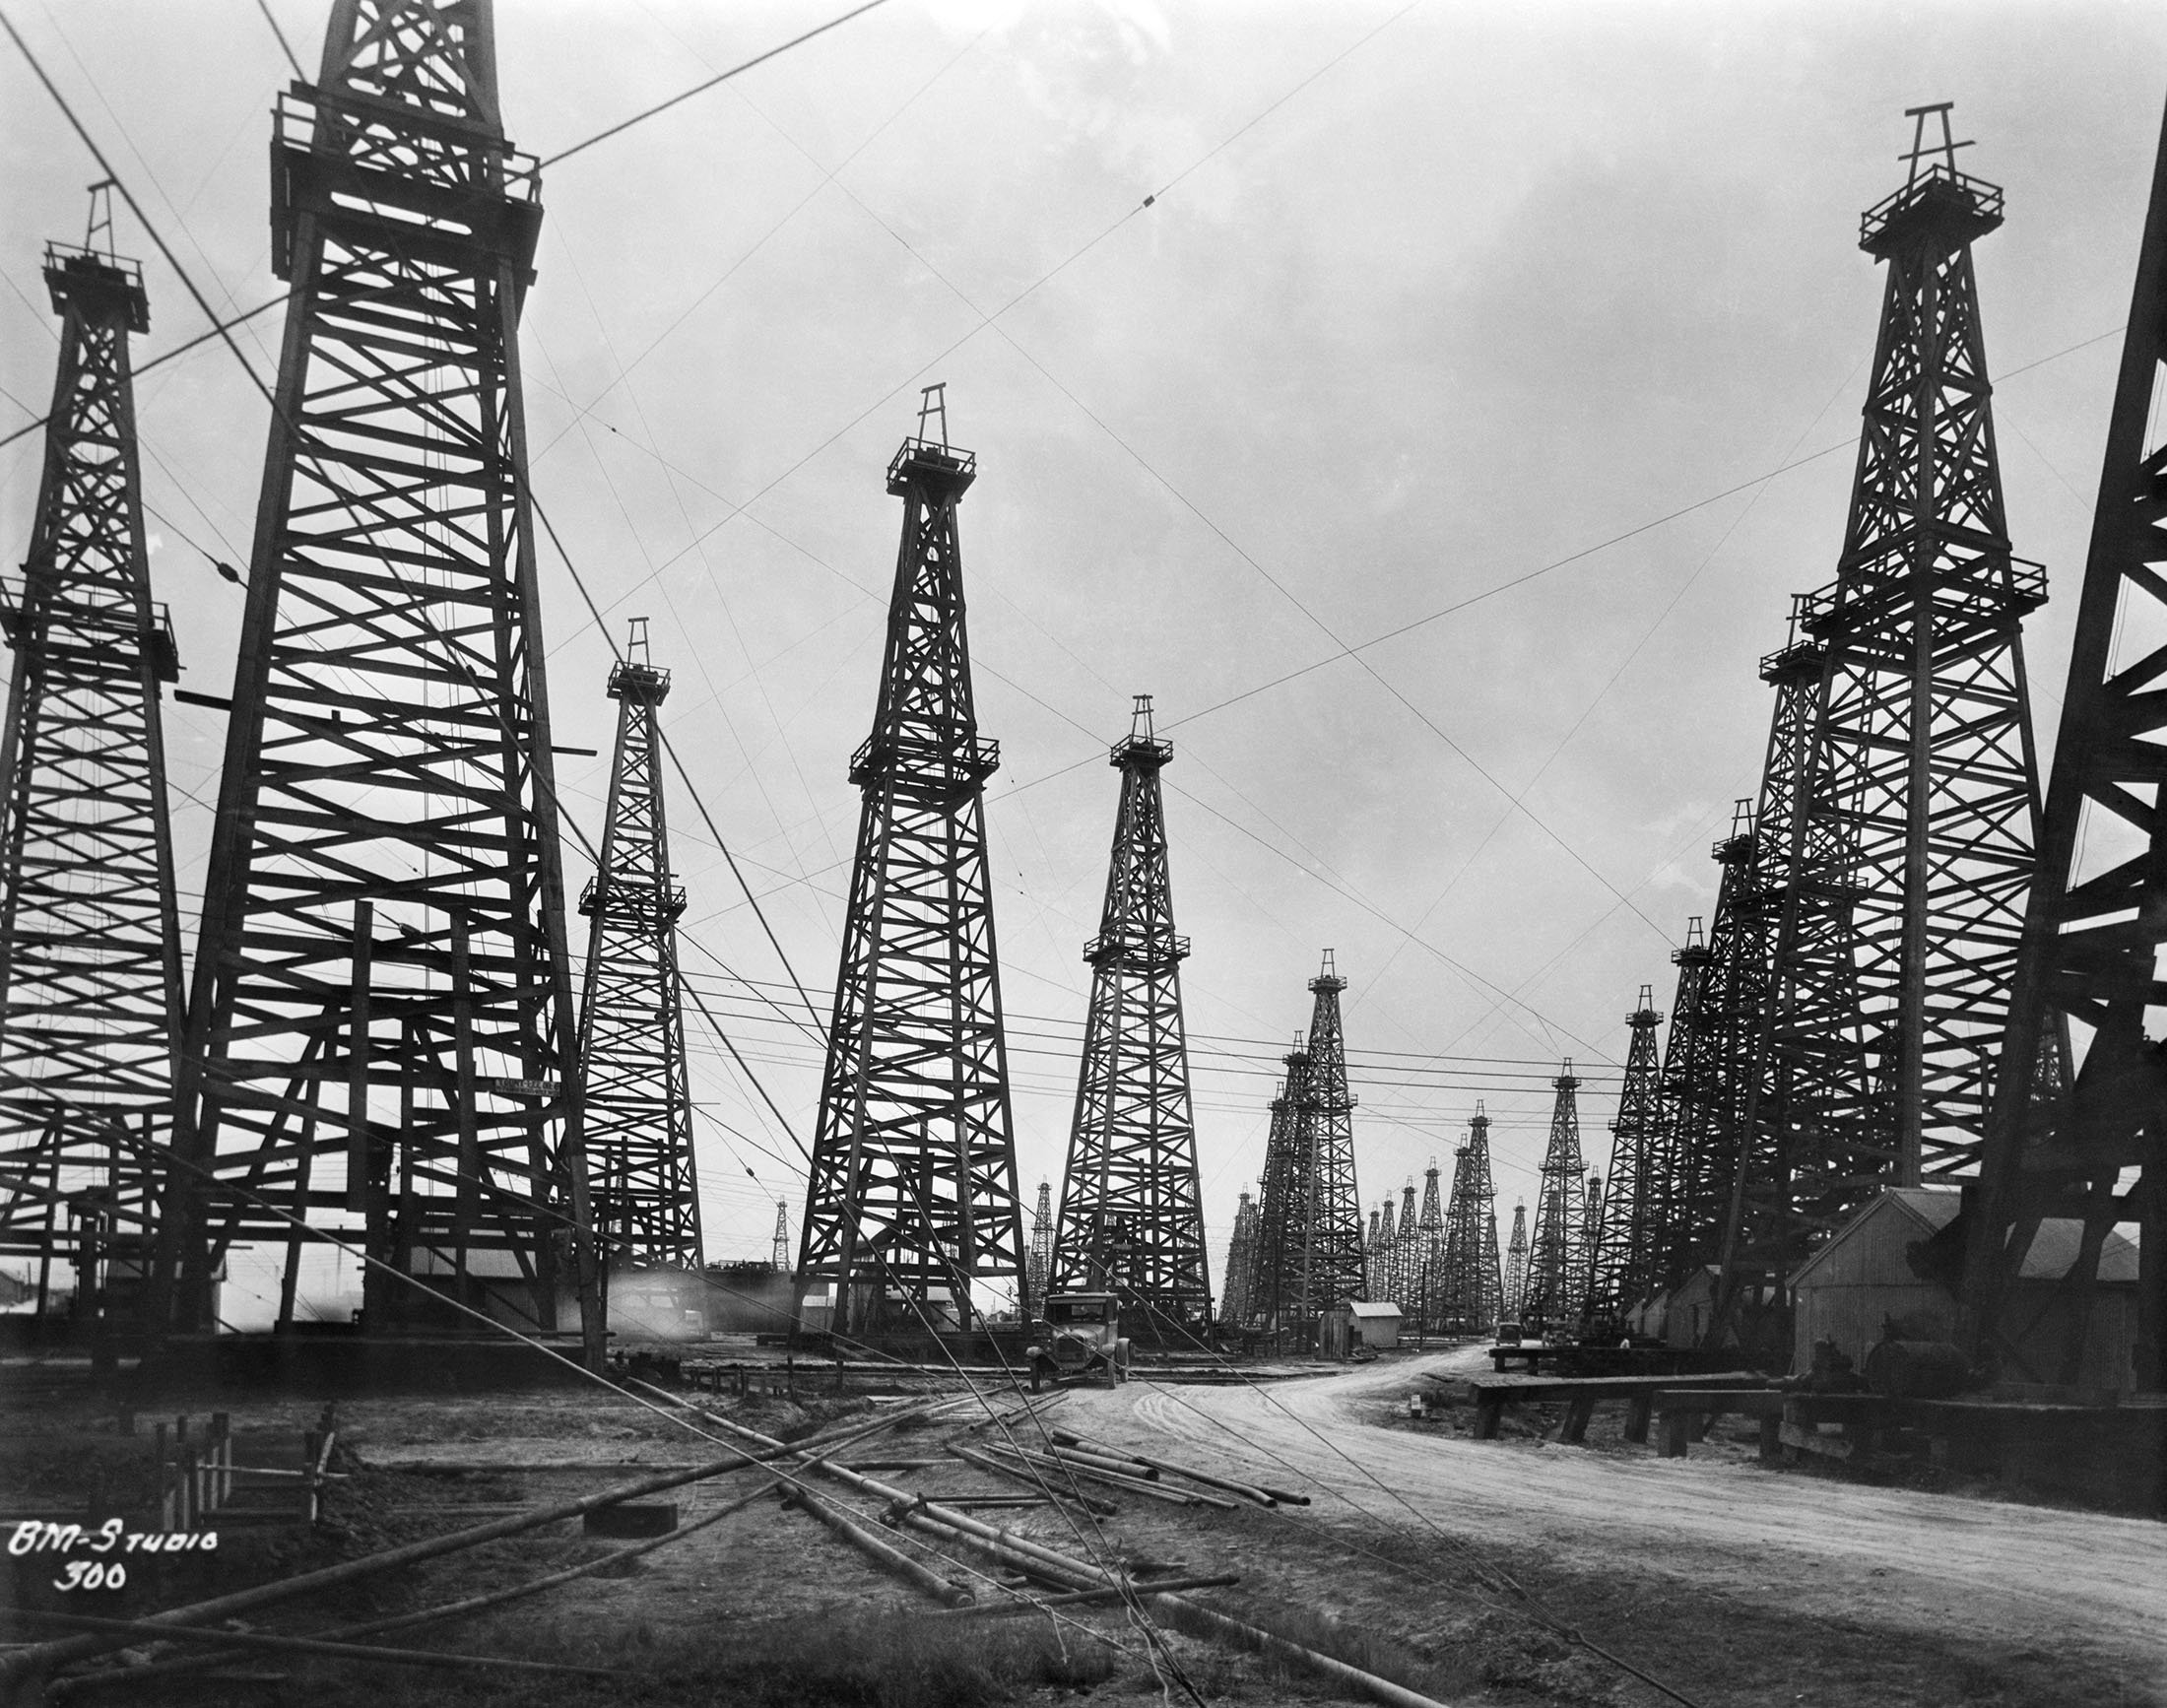 The famous Spindletop oil field with rows of wooden oil rigs and derricks can be seen in Beaumont, Texas, U.S., 1901. (Getty Images)